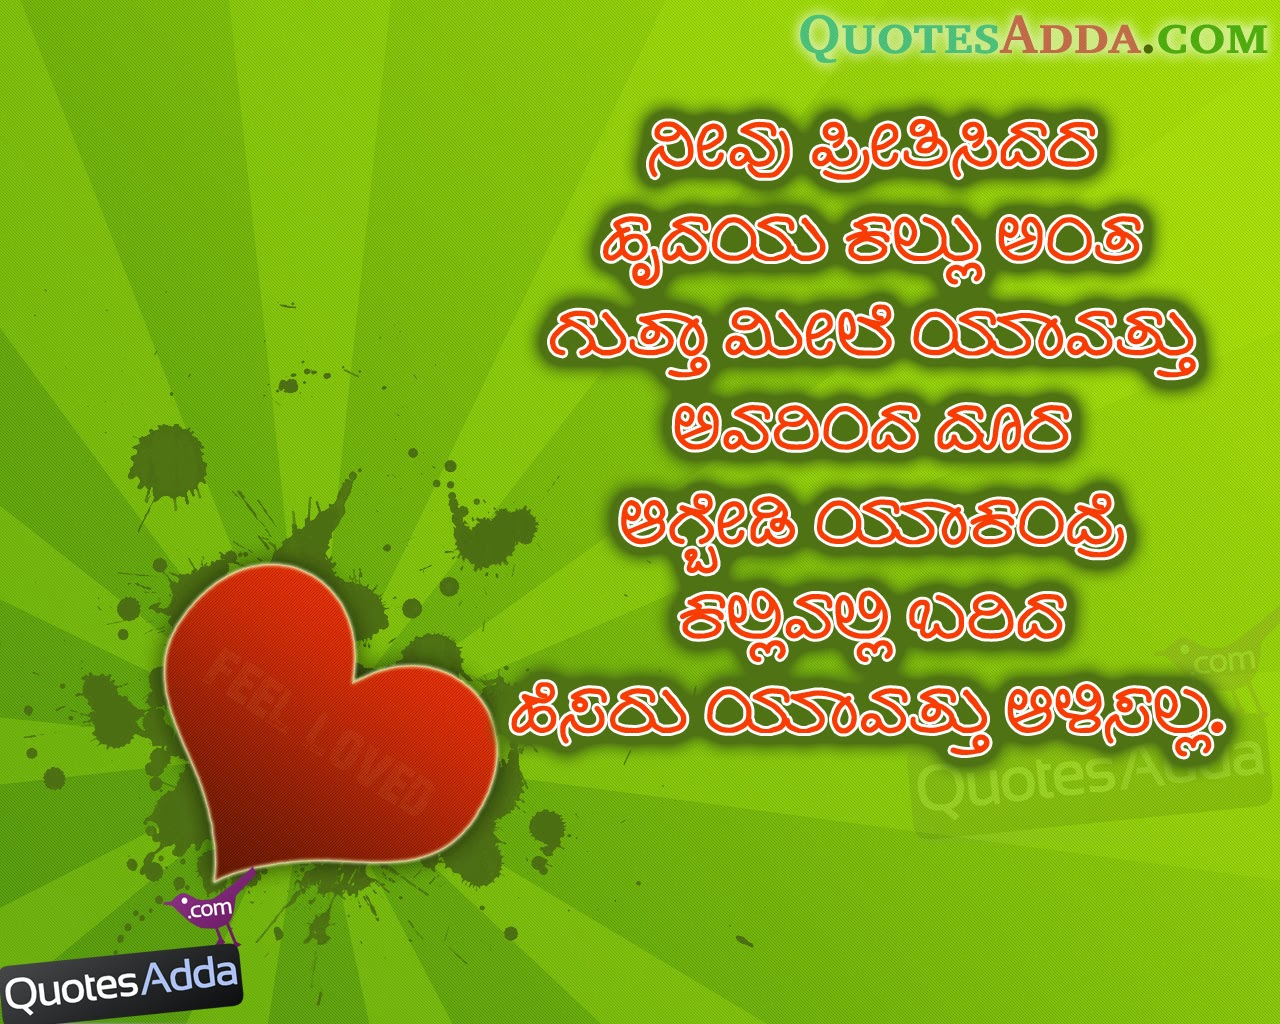 Kannada Love Quotes  Quotes Adda Com Quotes Tamil Quotes